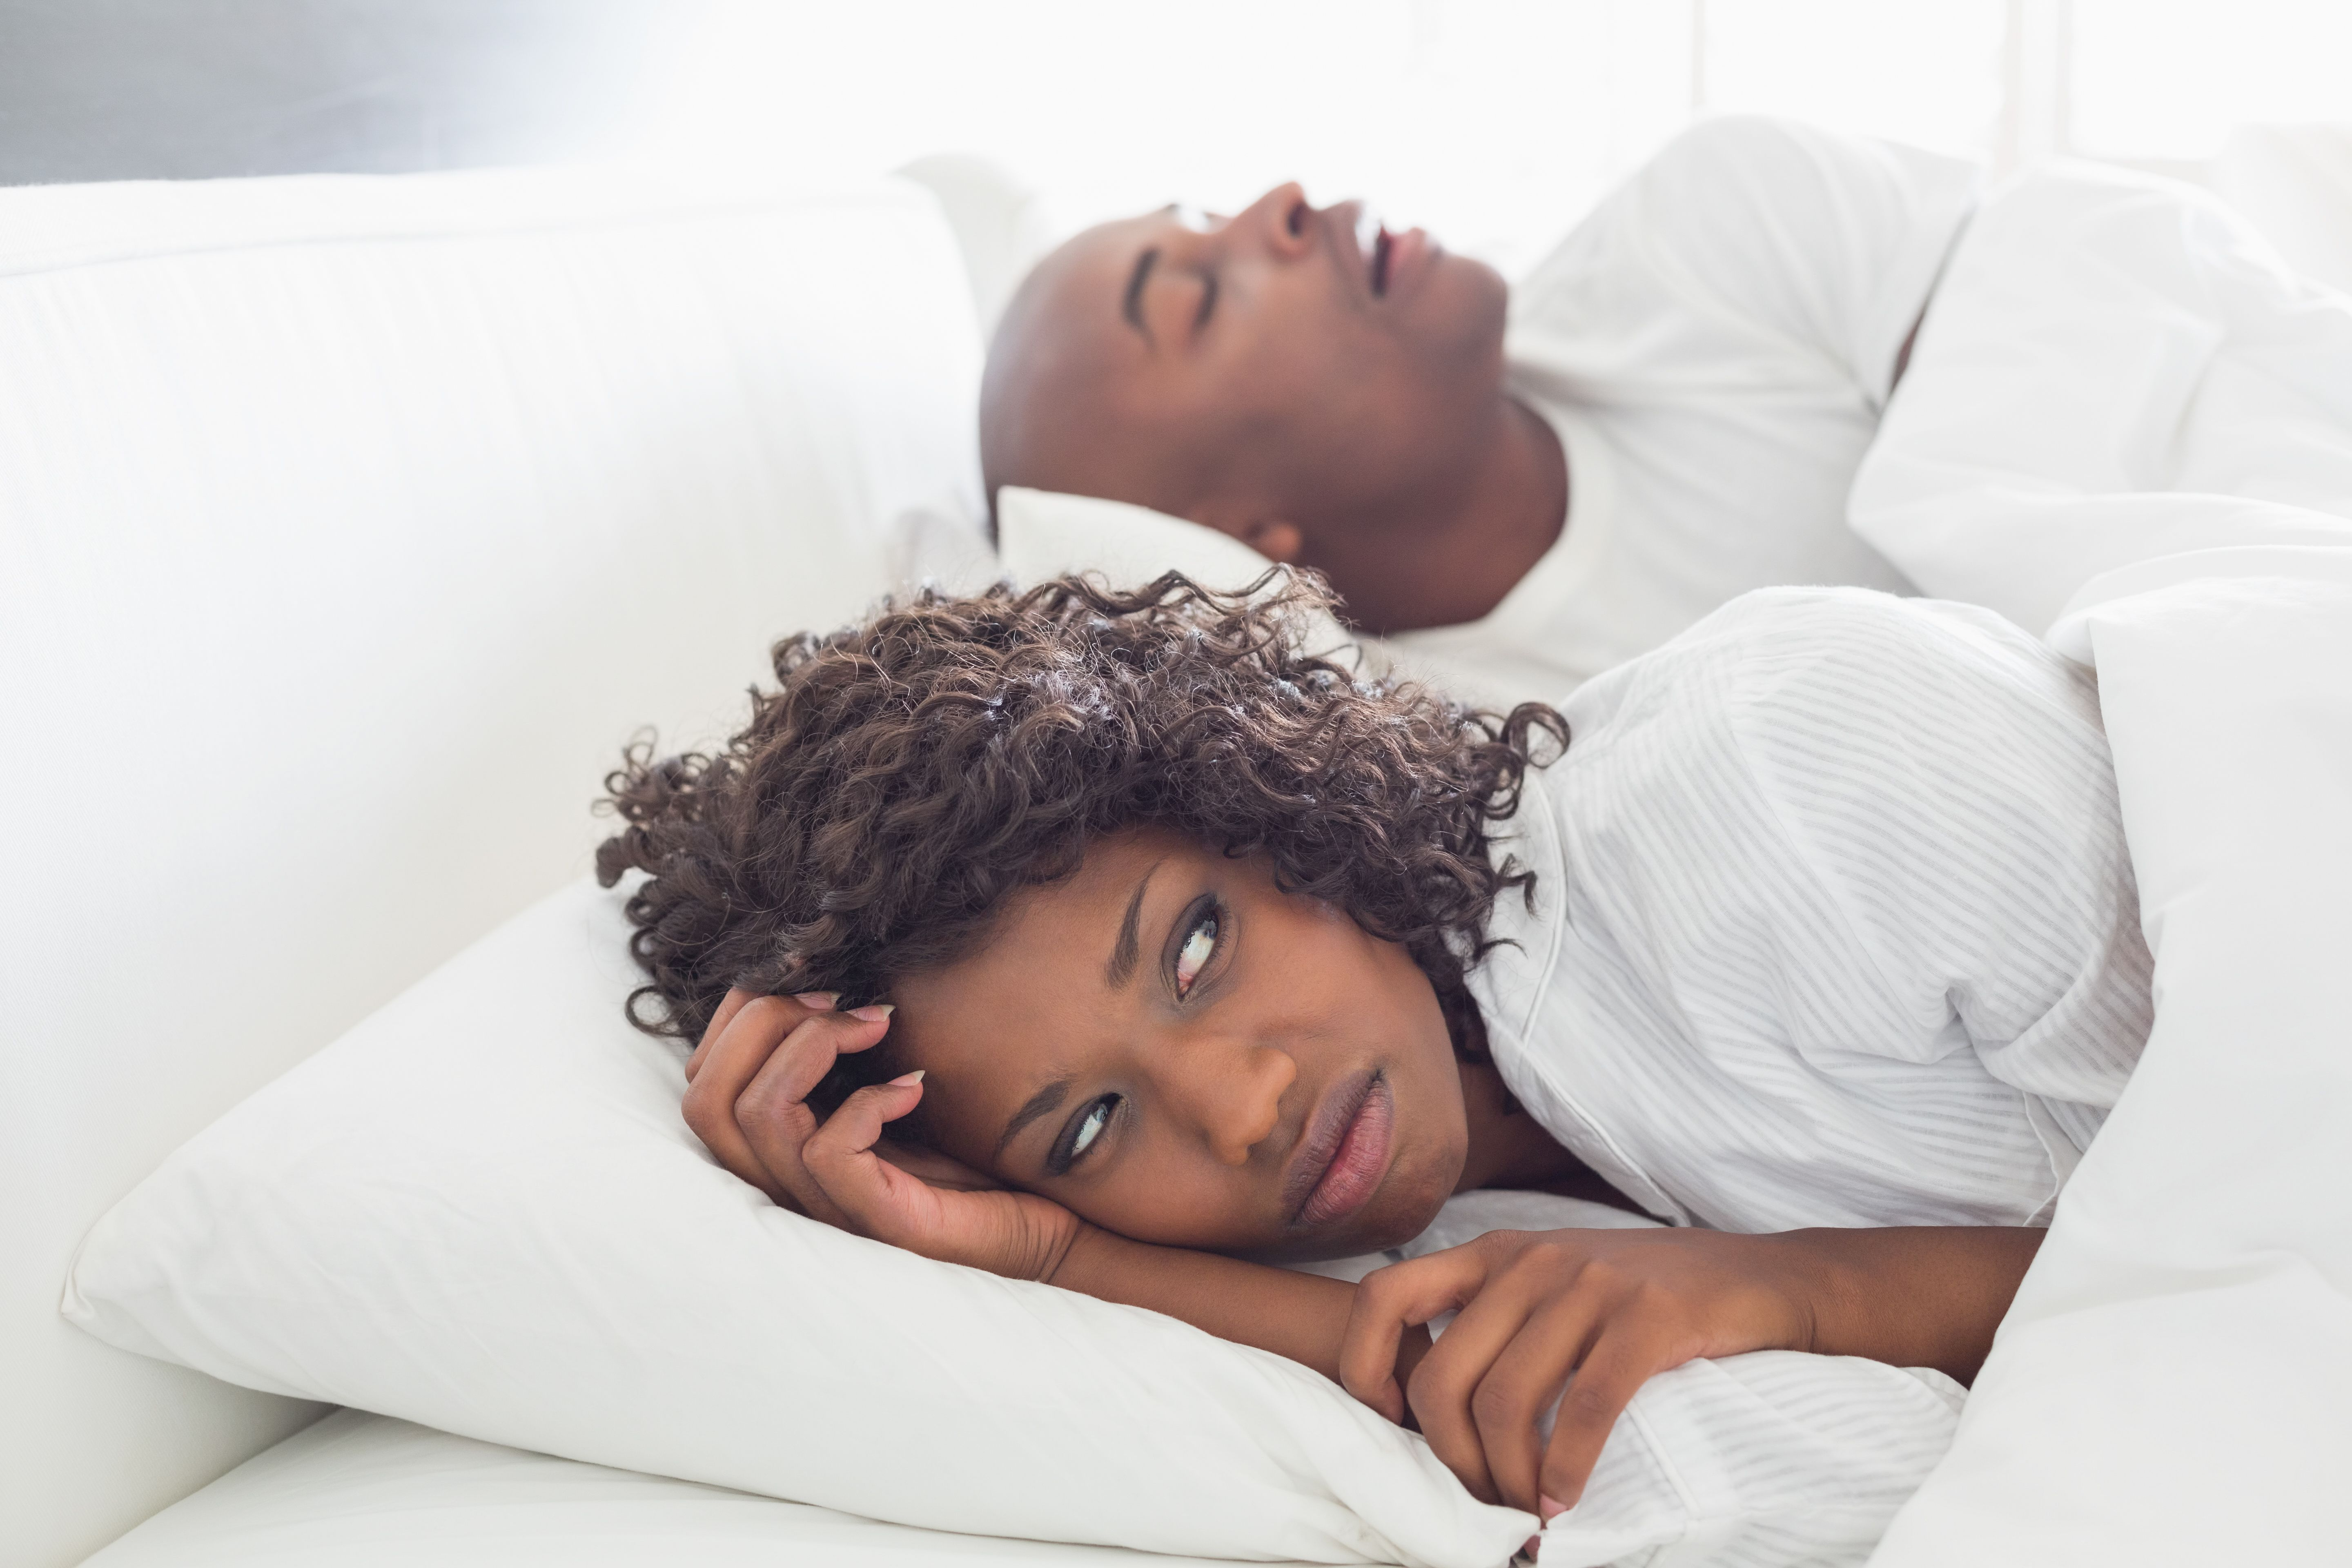 A woman putting up with her partner's snoring